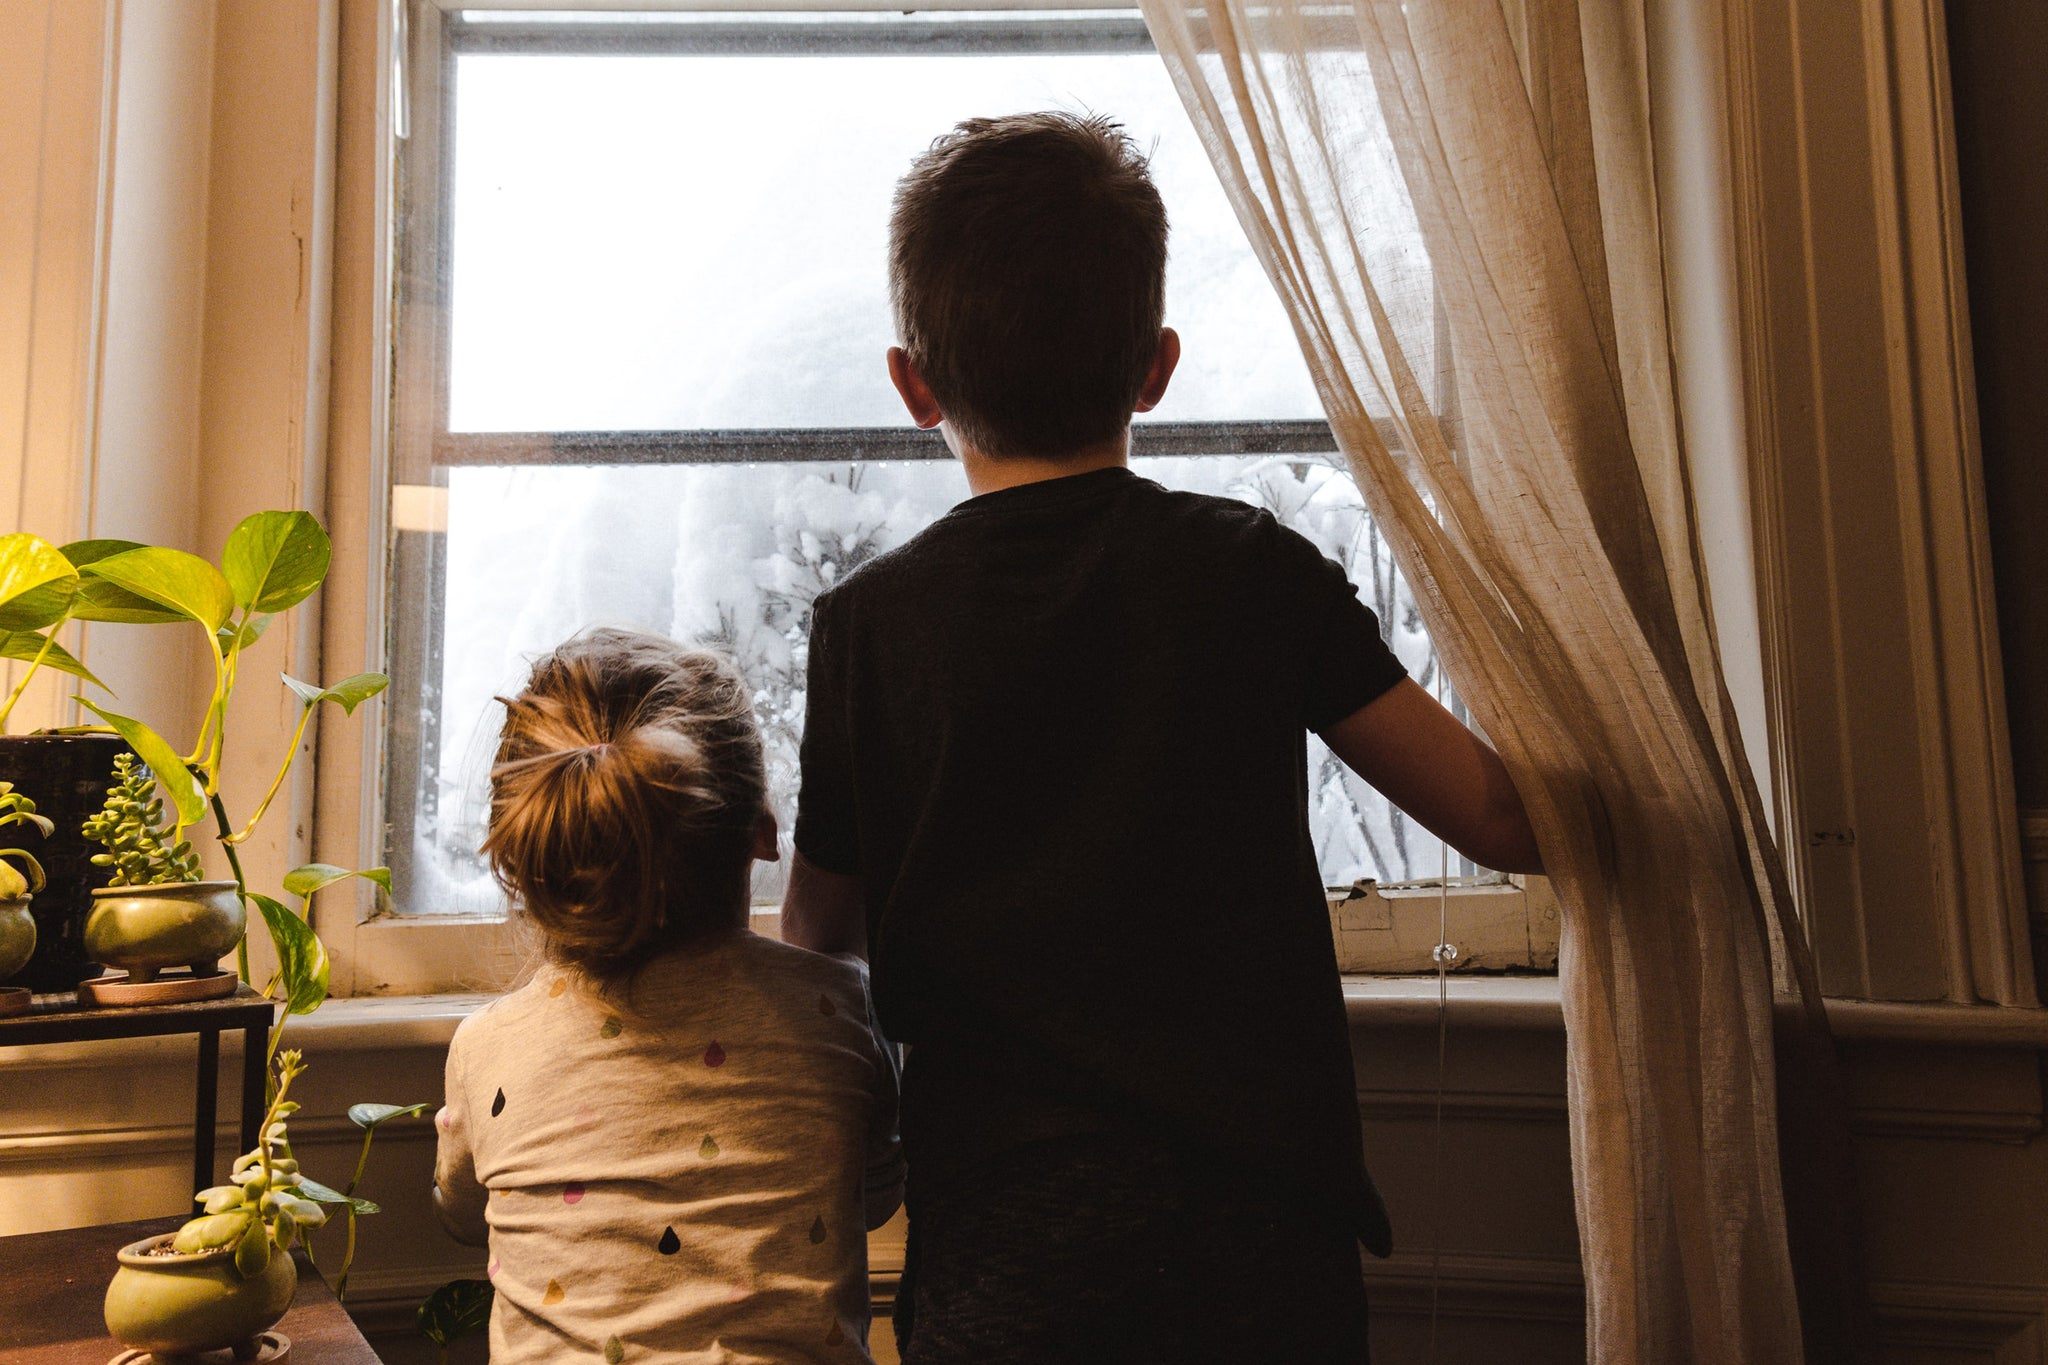 The evidence linking indoor air pollution and respiratory problems in children